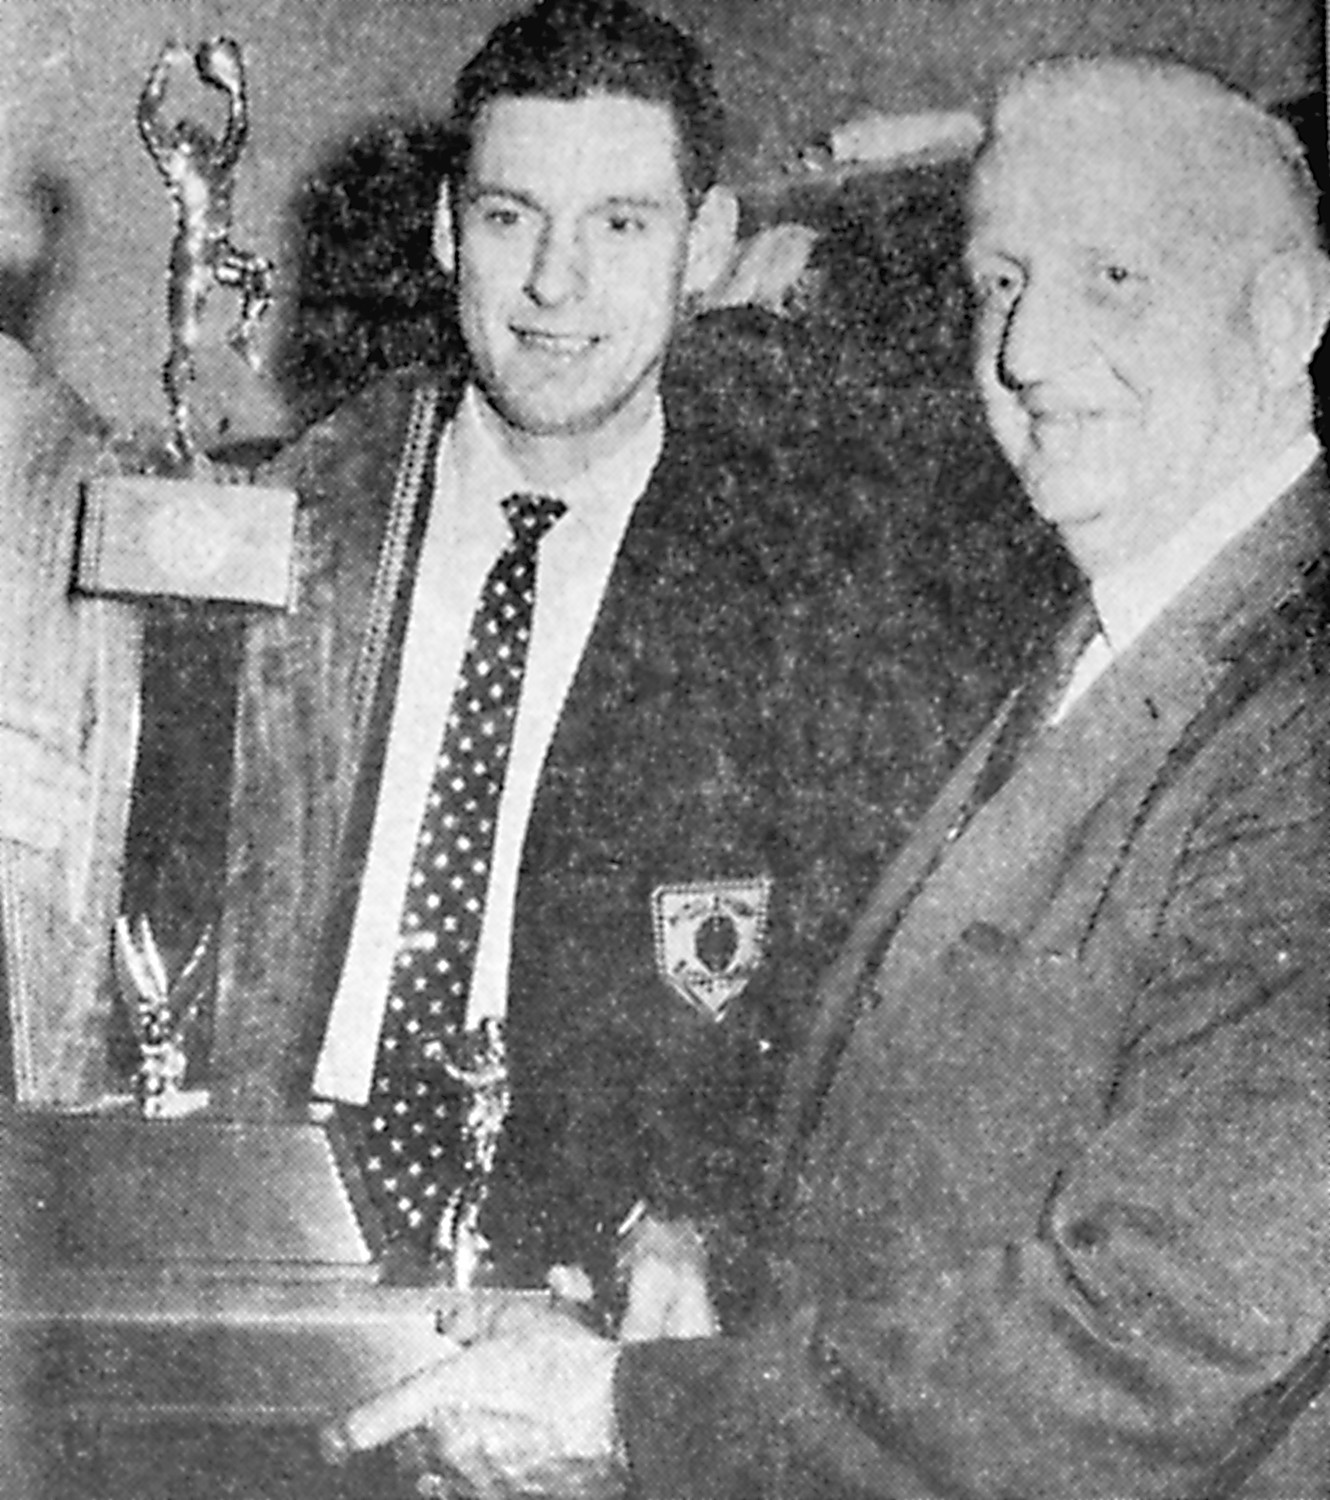 The State Championship Cup was presented to Casper Voithofer, coach of the Blue Raiders, after the team's impressive 78-48 win March 22, 1968, in Pittsburgh by Henry Pharaoh, game manager. Each of the players also received a medal, and local fans gave them a reception in nearby Chatham Center following the game.